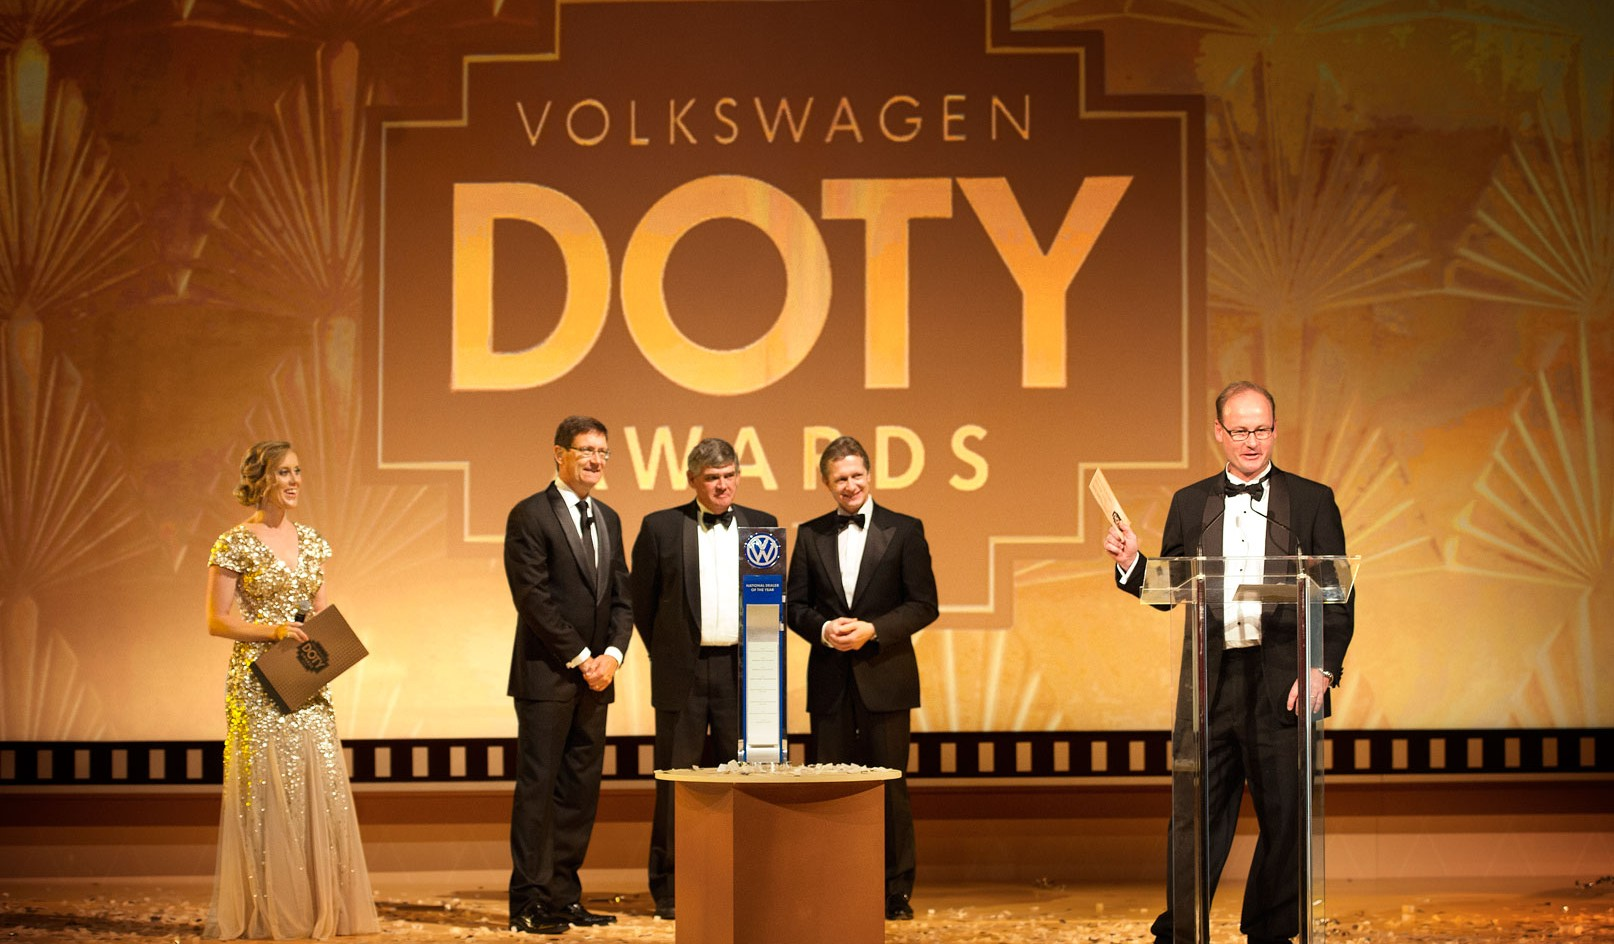 <div>Events</div><div> <a href='https://www.nedmeldrum.com.au/project/volkswagen-dealer-of-the-year/'>View Series</a></div>